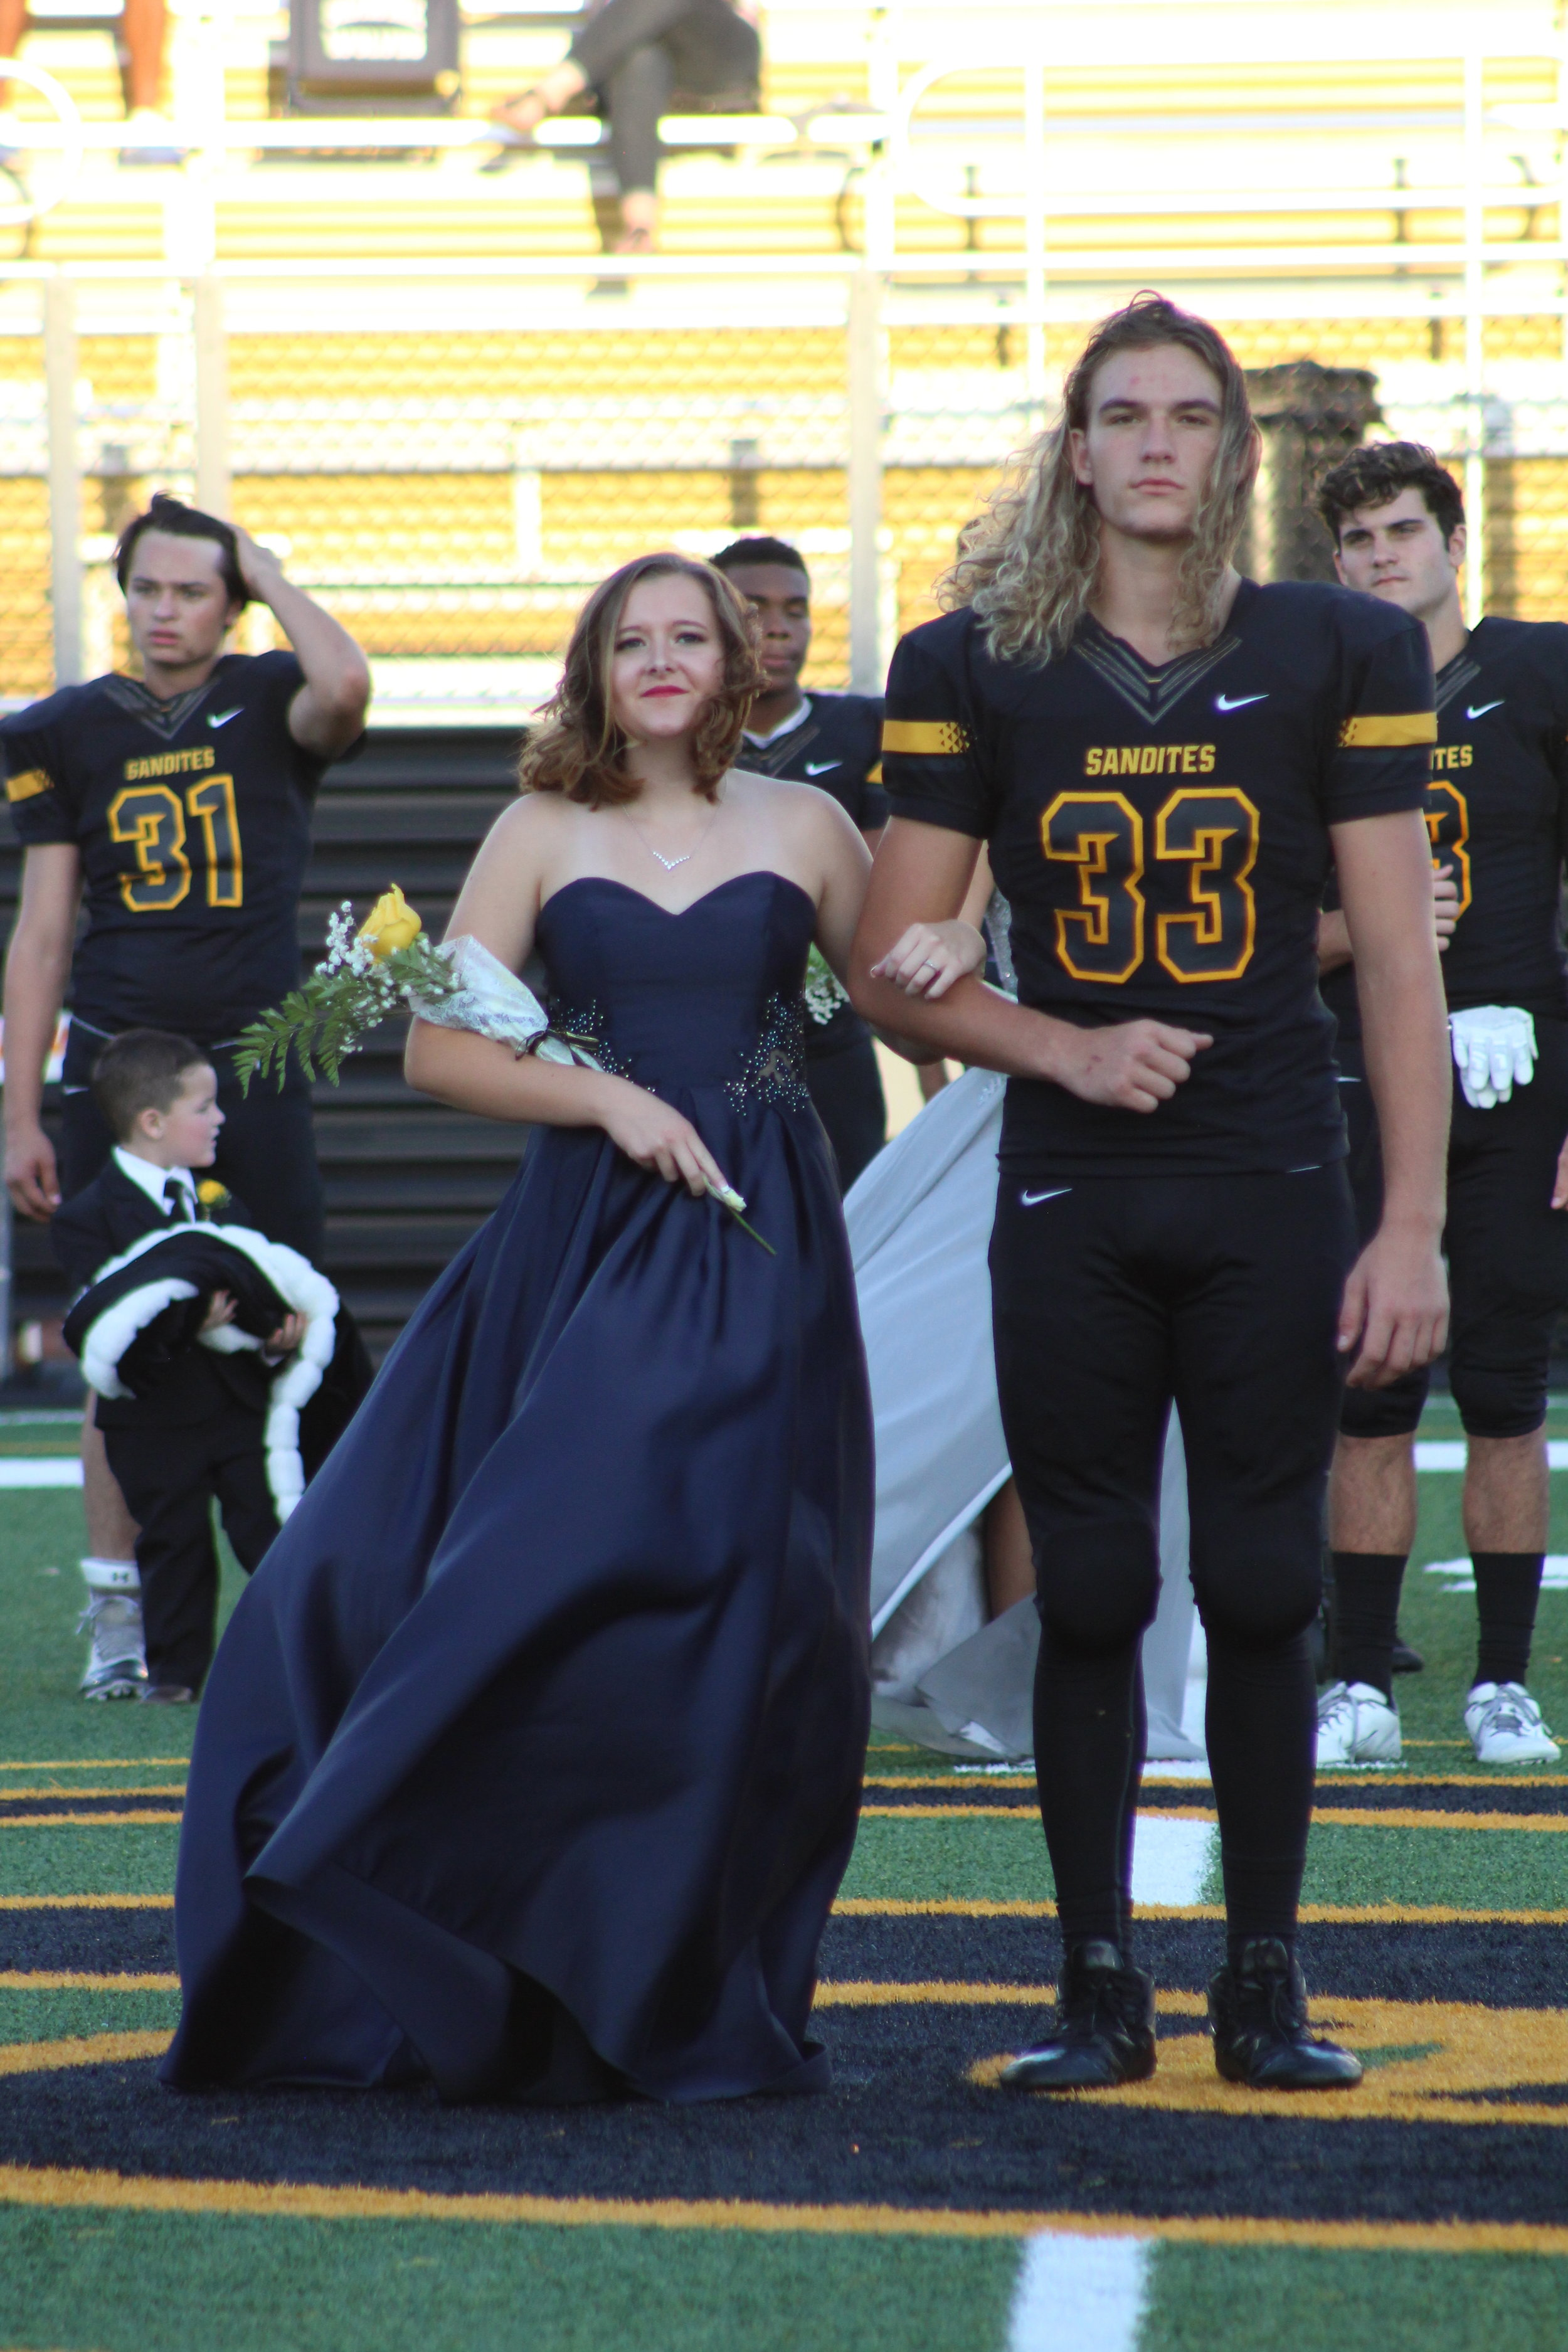 Kristin Shipley, escorted by Riley Magee. Shipley is the daughter of Darin and Pam Shipley. She is a four-year Gold Pride Marching Band member. Magee is the son of Jamy and Erica Magee and is a three-year varsity defensive lineman.